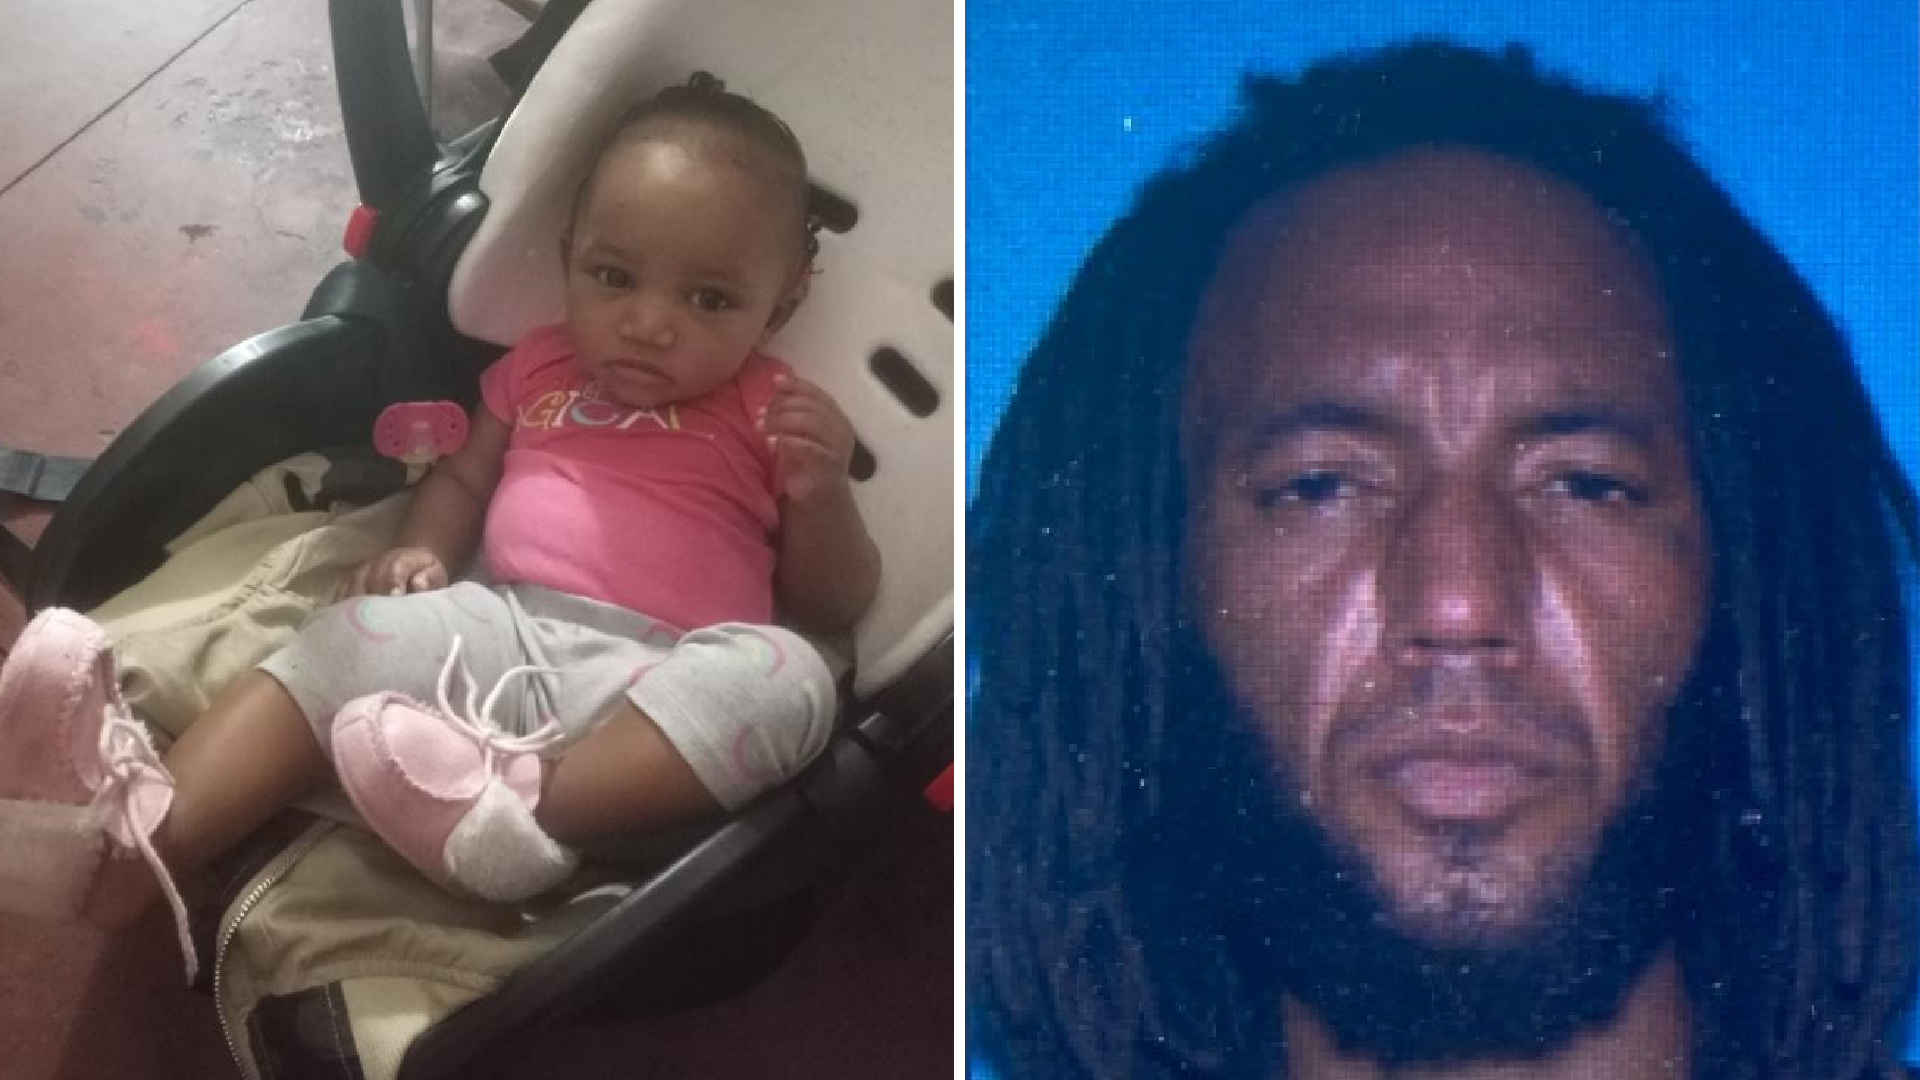 Eleven-month-old Heather and a man suspected of taking her, 39-year-old Delaneo Adams, are seen in undated photos provided by the Los Angeles Police Department on March 8, 2021.